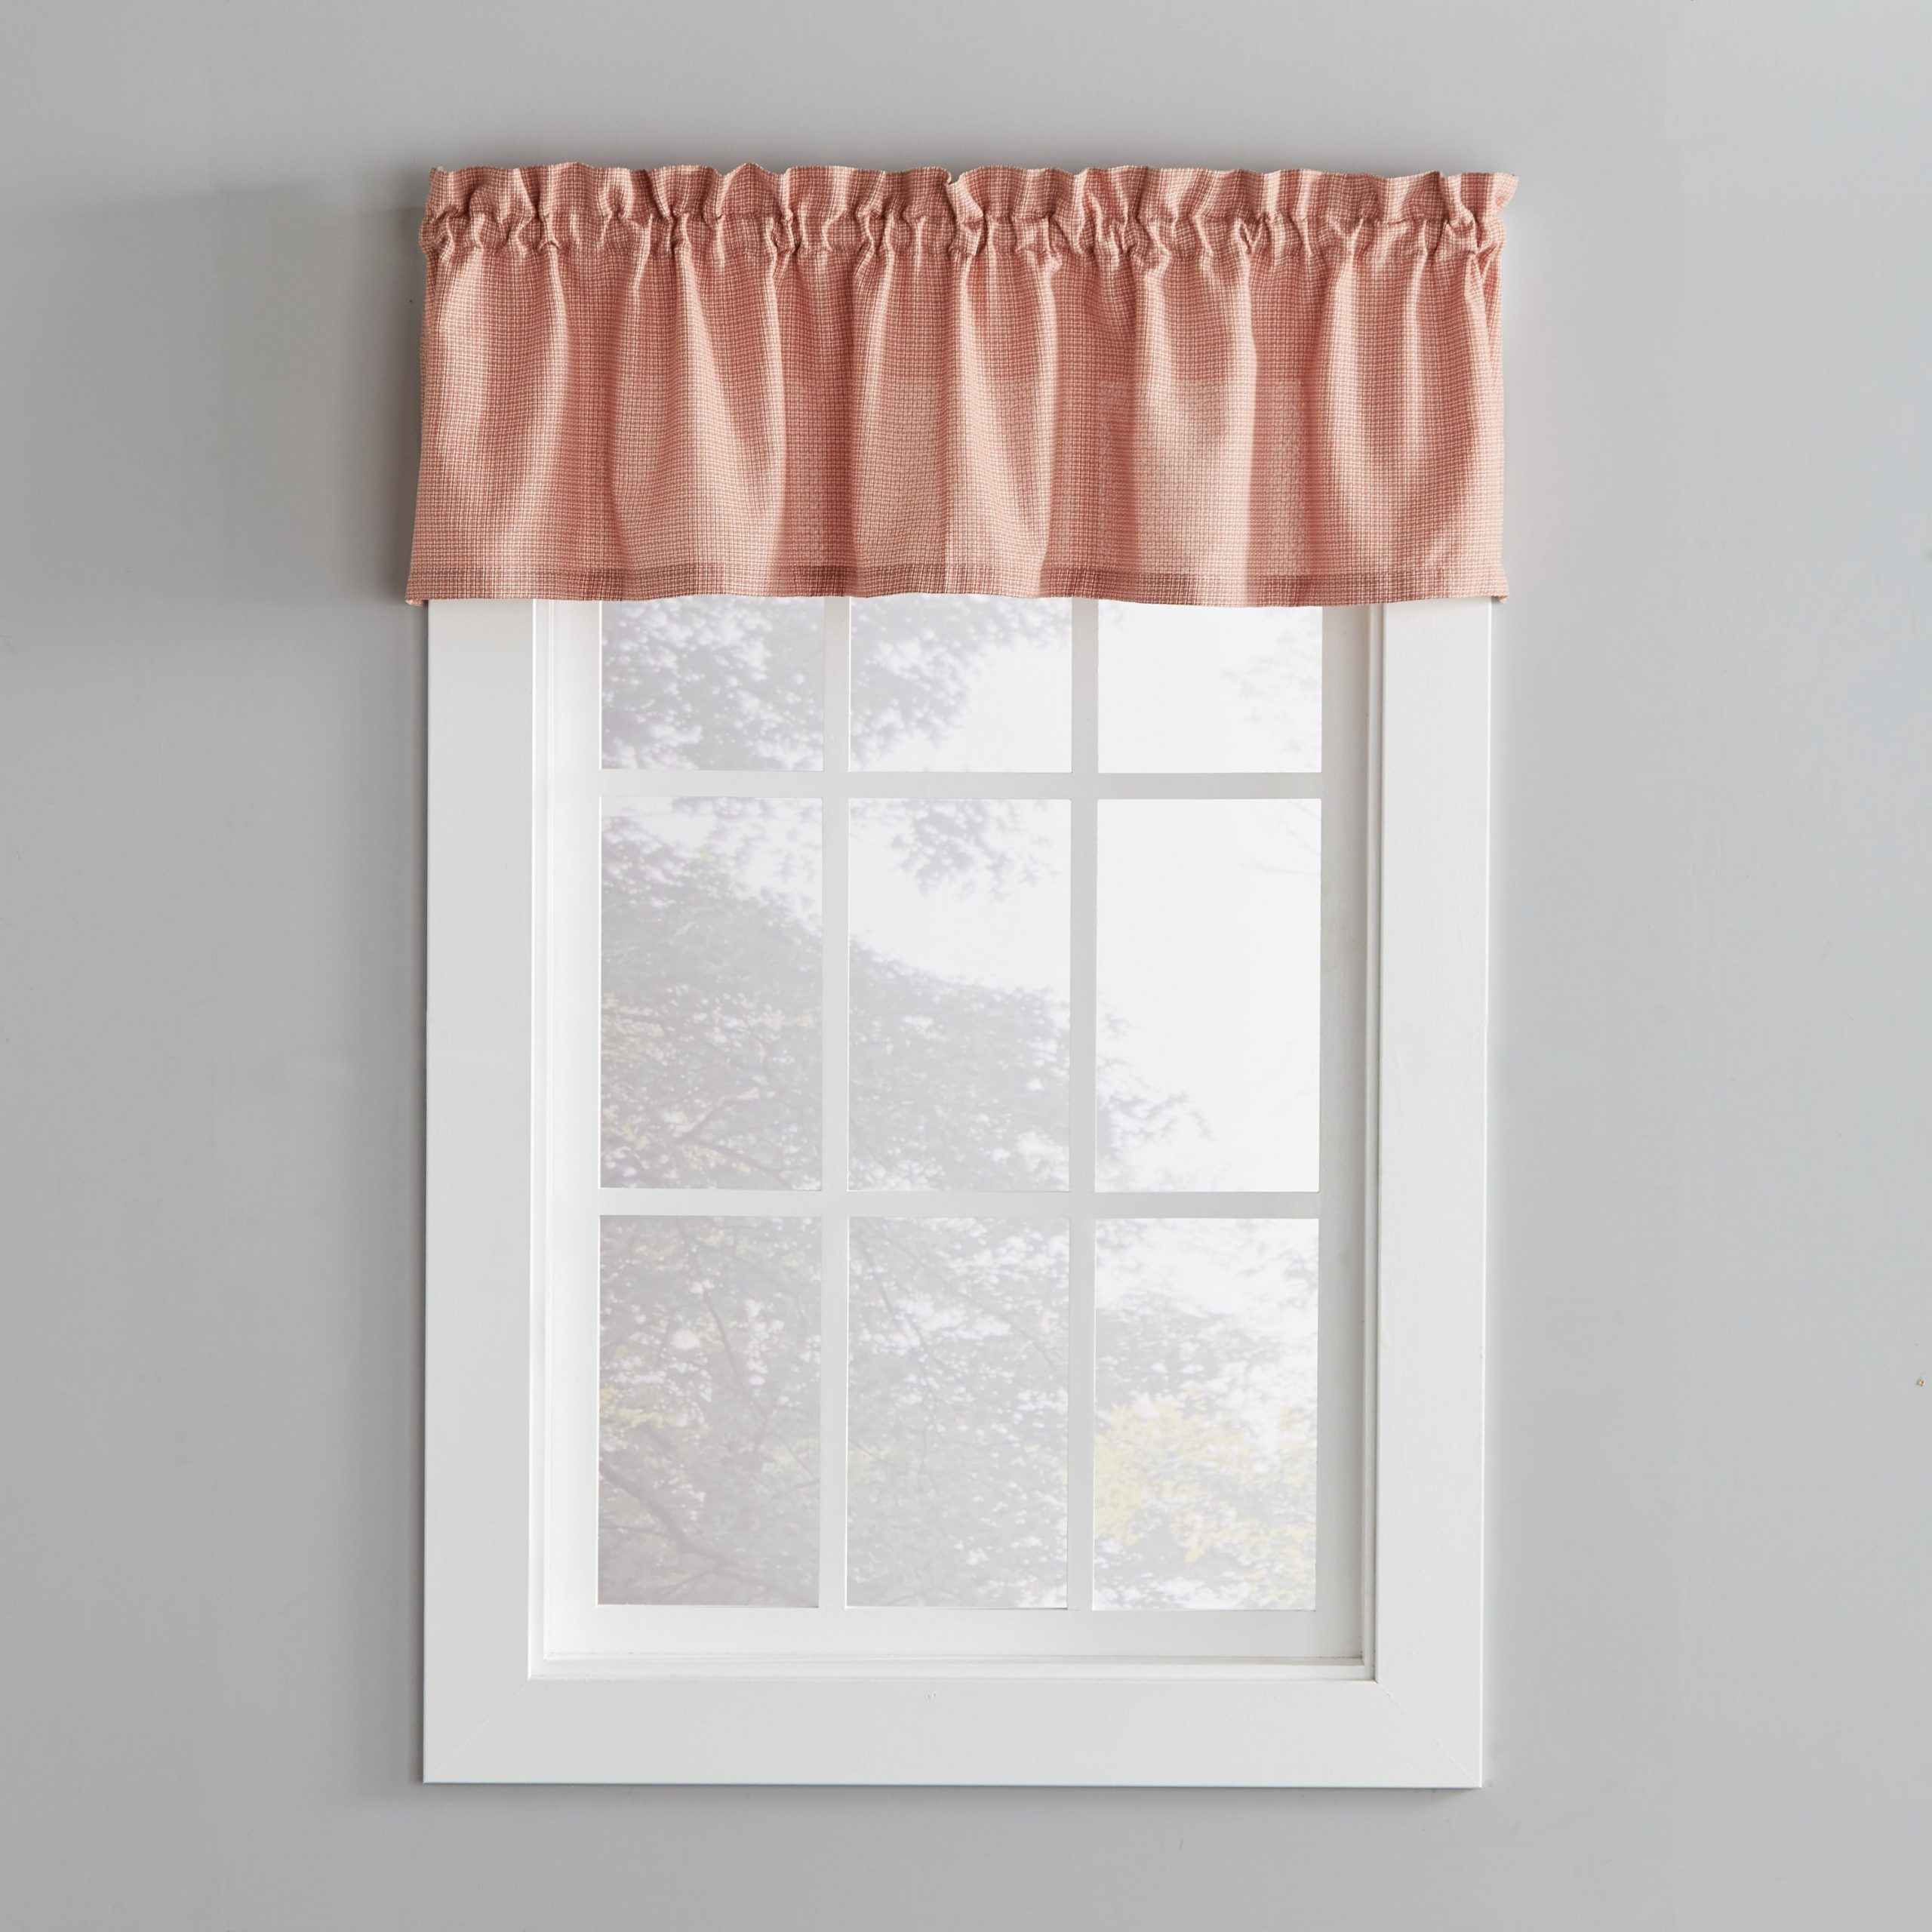 Well Liked Flinders Forge 30 Inch Tiers In Garnet Pertaining To Porch & Den Lorentz Rust 13 Inch Valance (View 16 of 20)